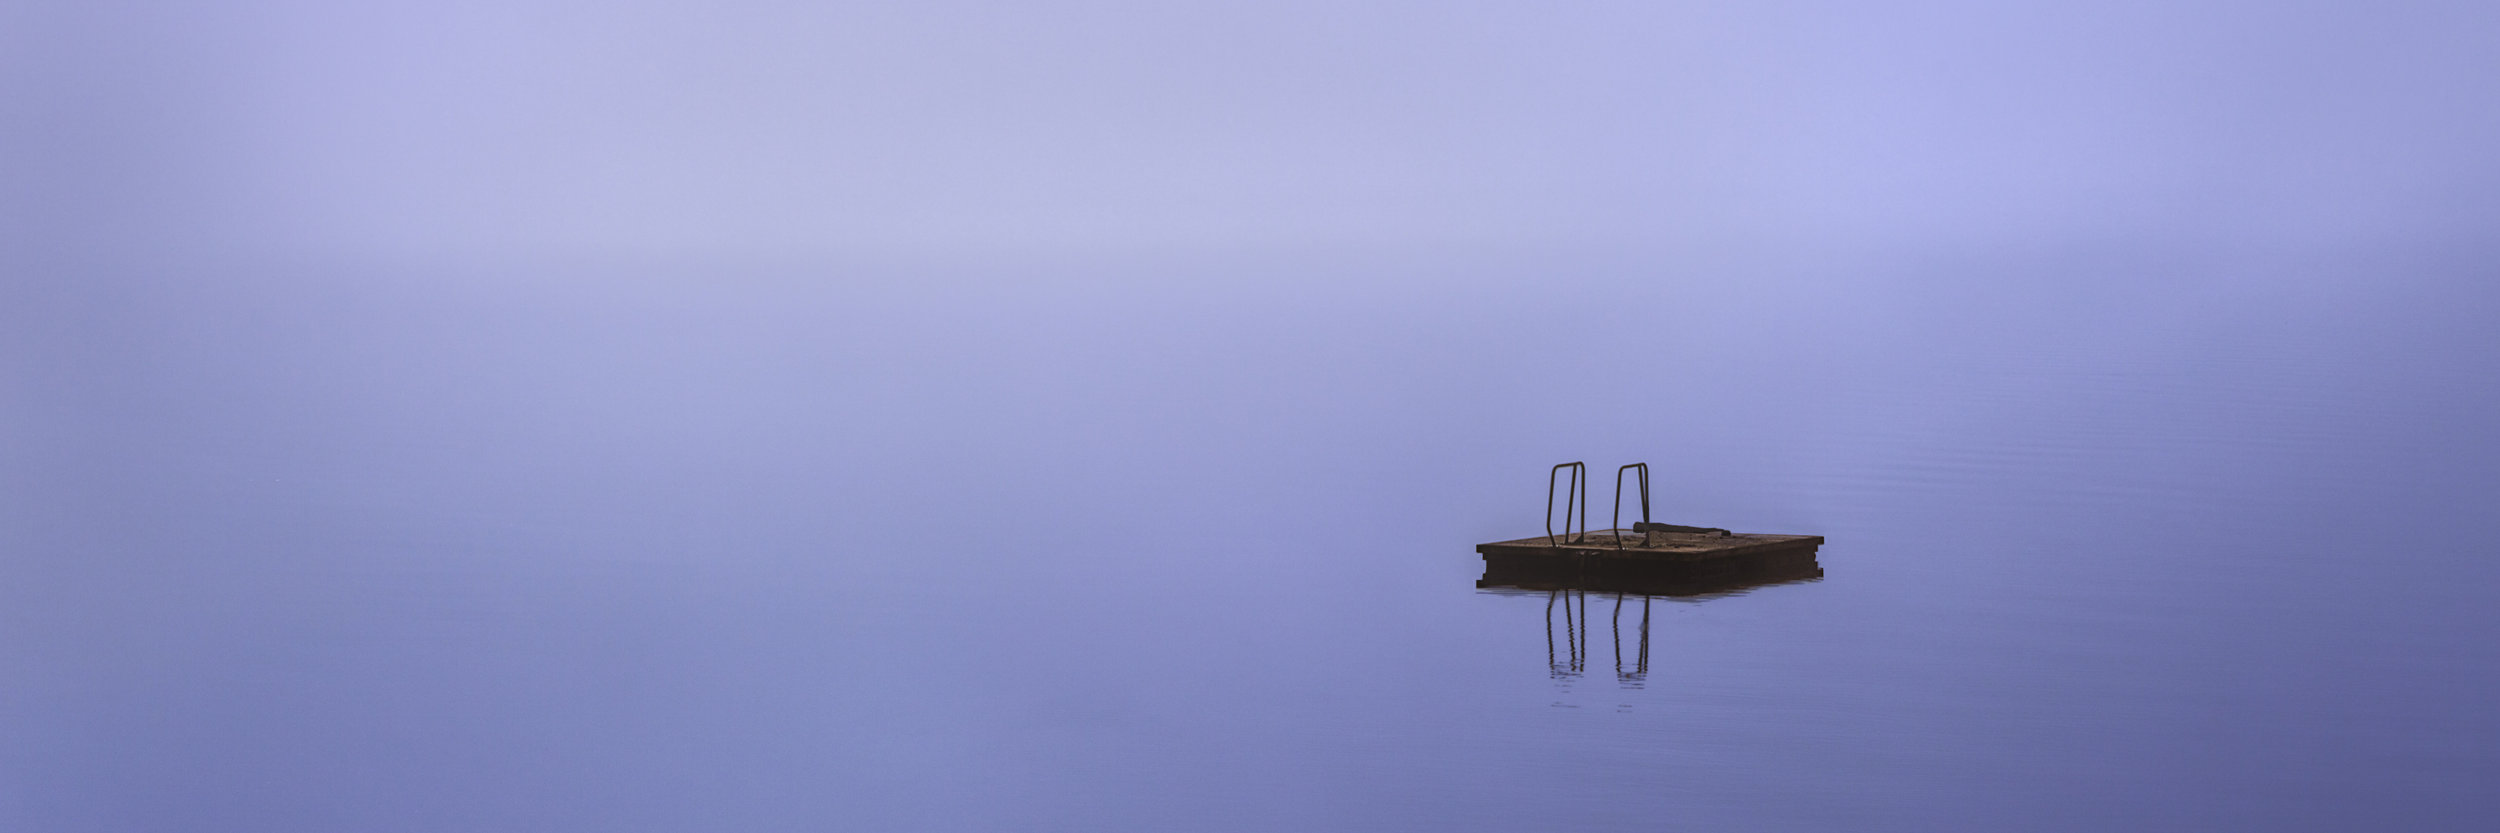 A panoramic photograph of a dock floating on perfectly still water of the Hood Canal. The clam scene is flooded with a morning fog that blends the sky and the water in a seamless blue canvas.